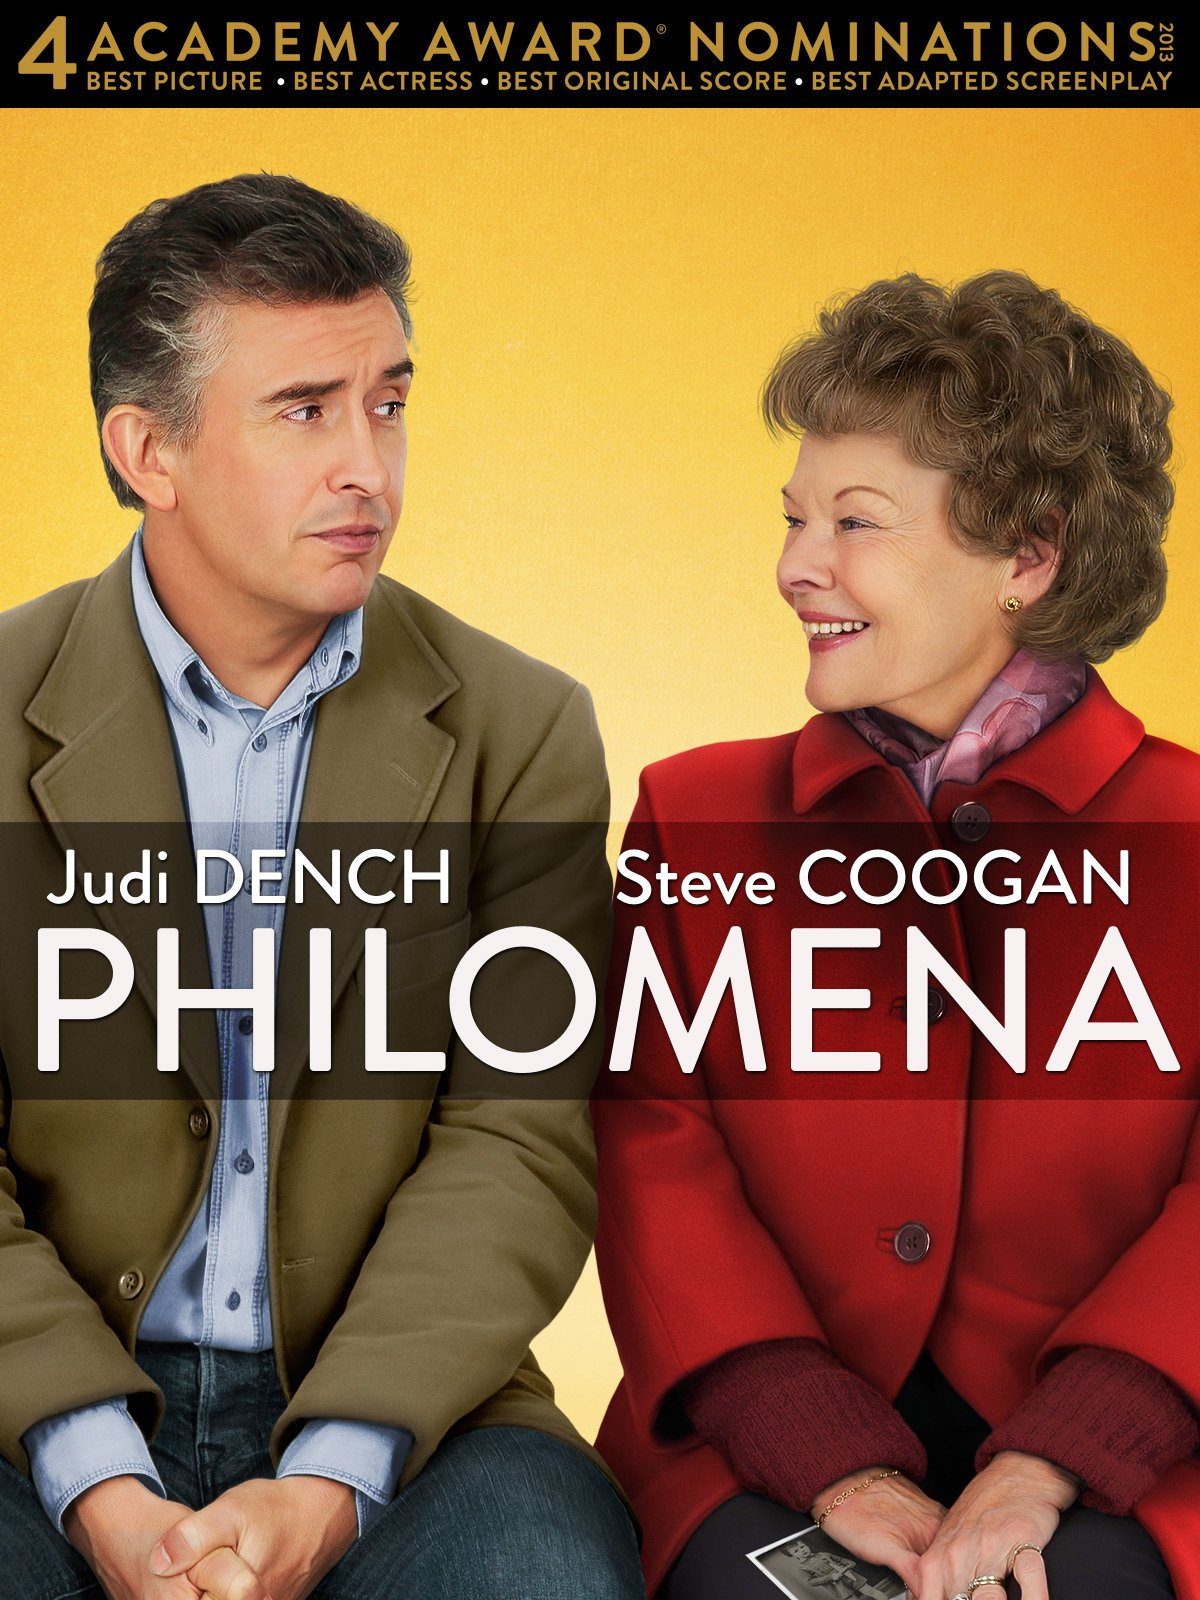 Amazon.com: Philomena: Judi Dench, Steve Coogan, Stephen Frears, Carolyn  Marks Blackwood: Amazon Digital Services LLC